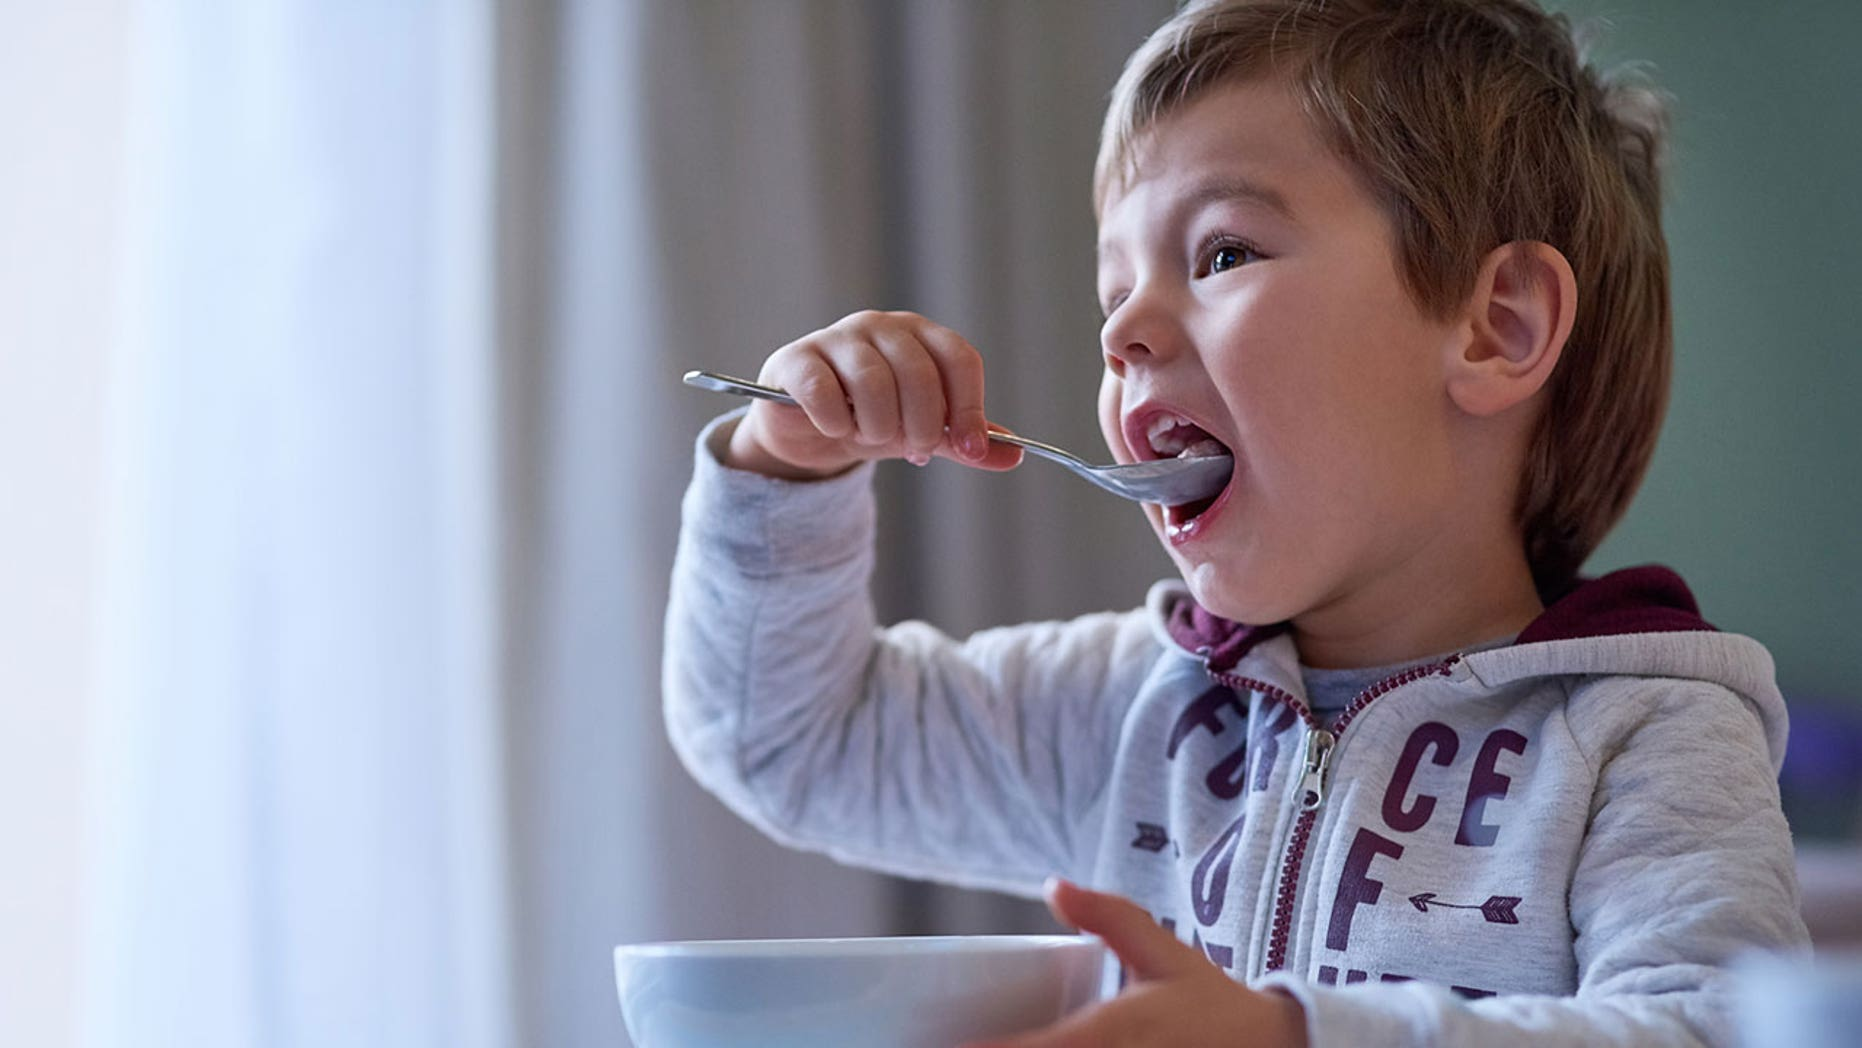 Parents might be wise to stock up on supermarket staples that make dinnertime a tiny bit easier.